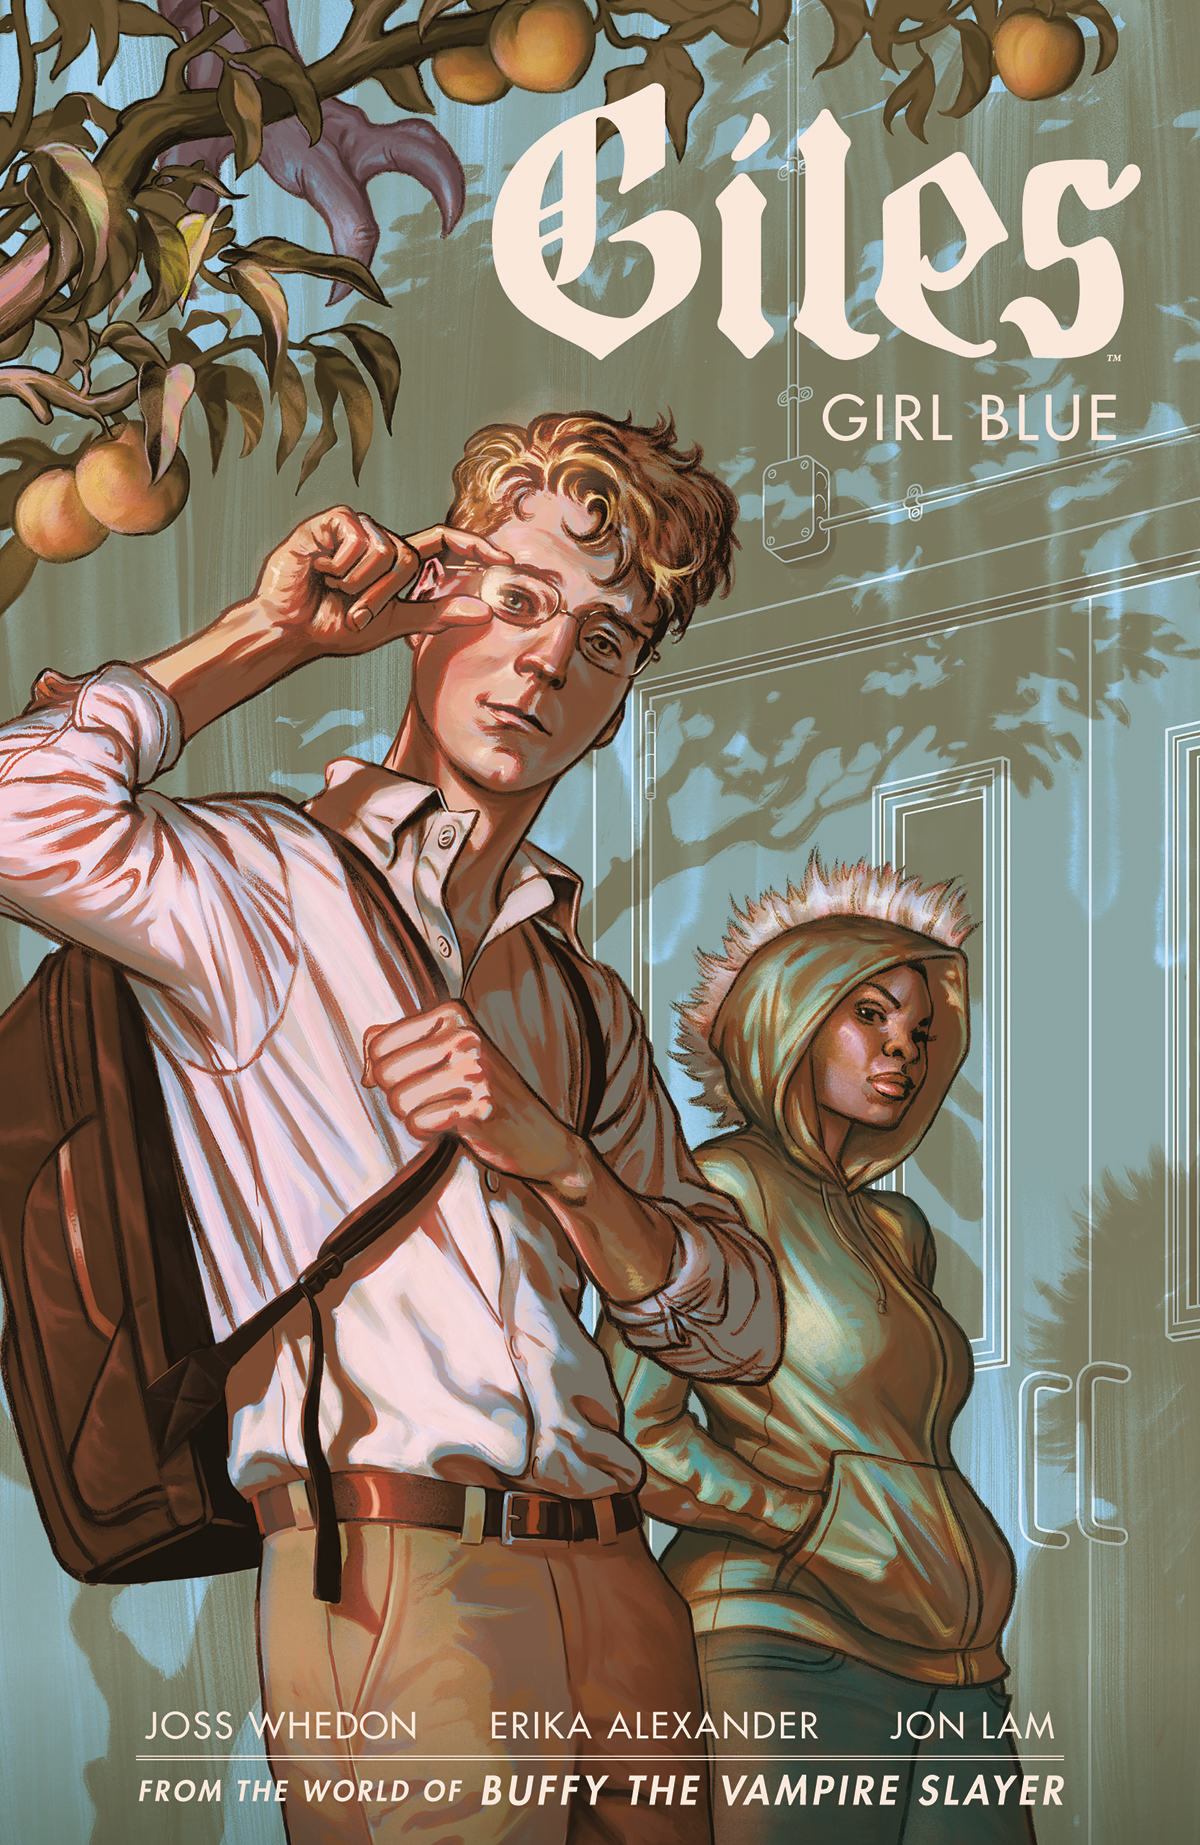 BTVS SEASON 11 GILES GIRL BLUE TP VOL 01